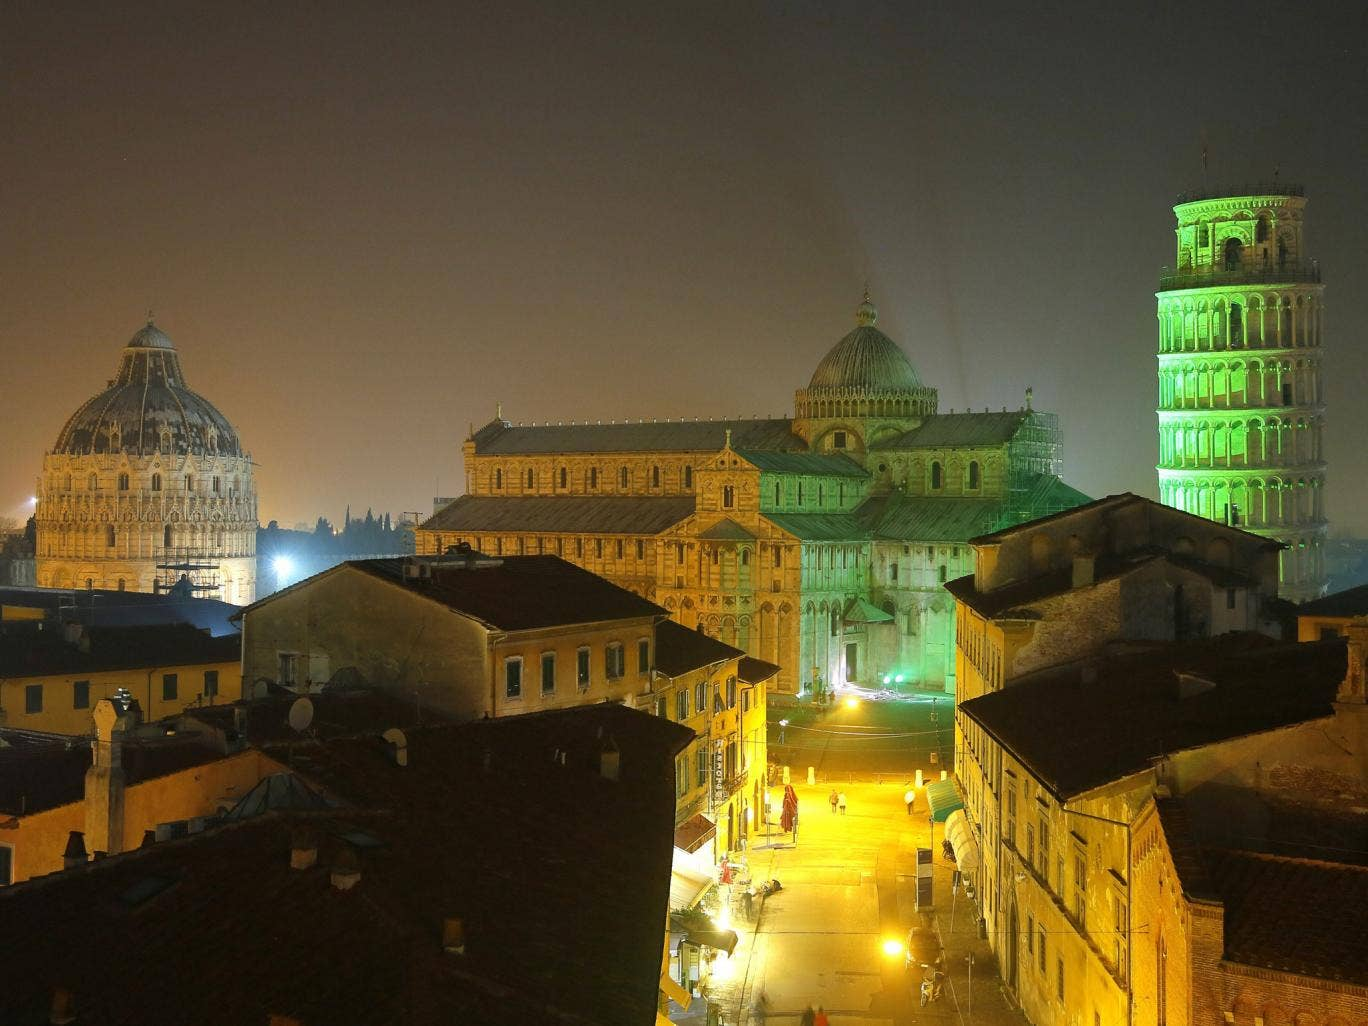 The Italian city of Pisa was one of two destinations where travellers can stay in five-star accommodation for £100 or less